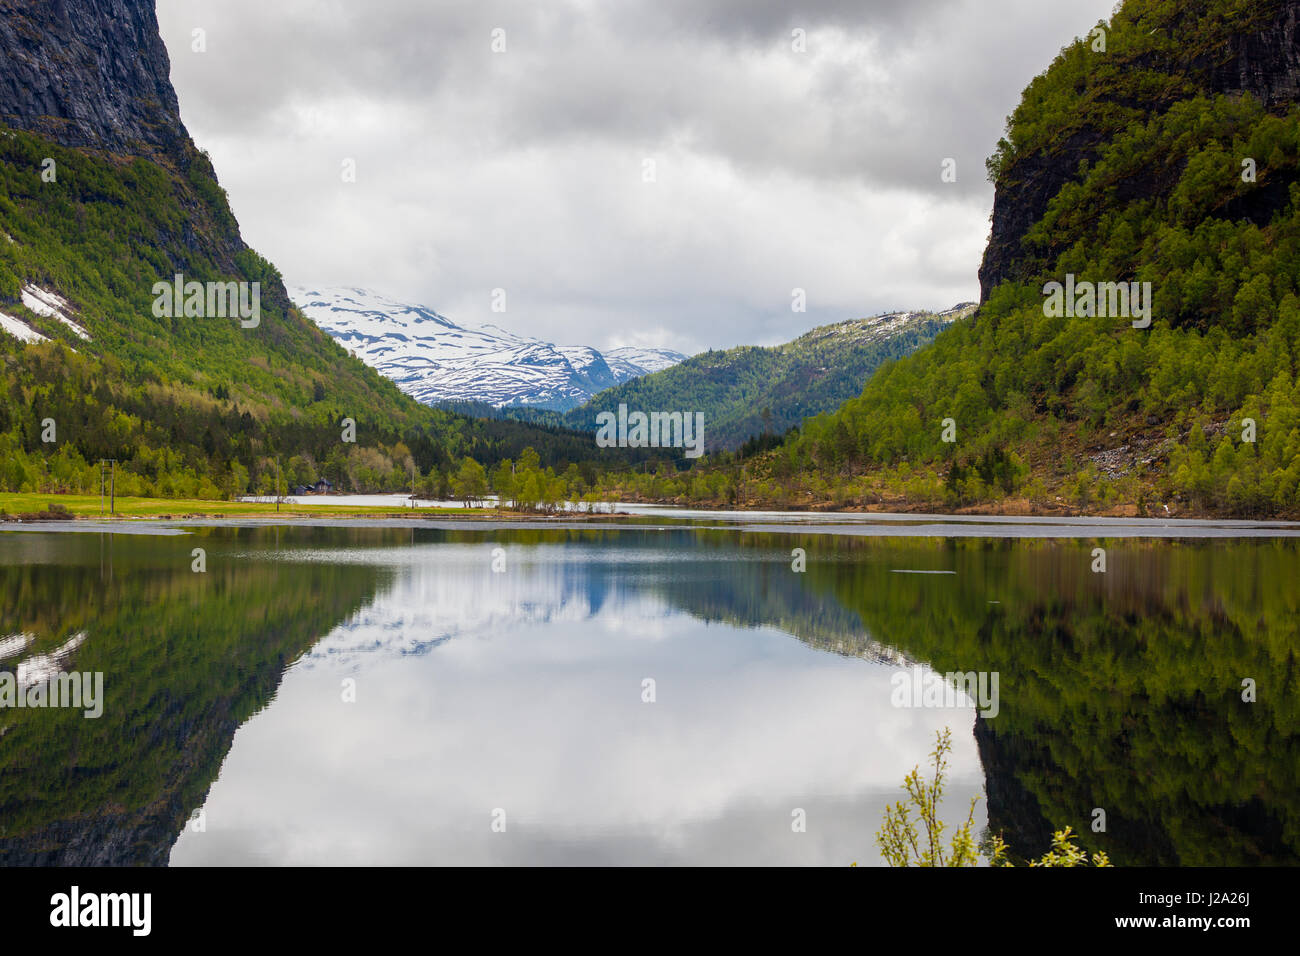 Typical landscape west in Norway - Stock Image